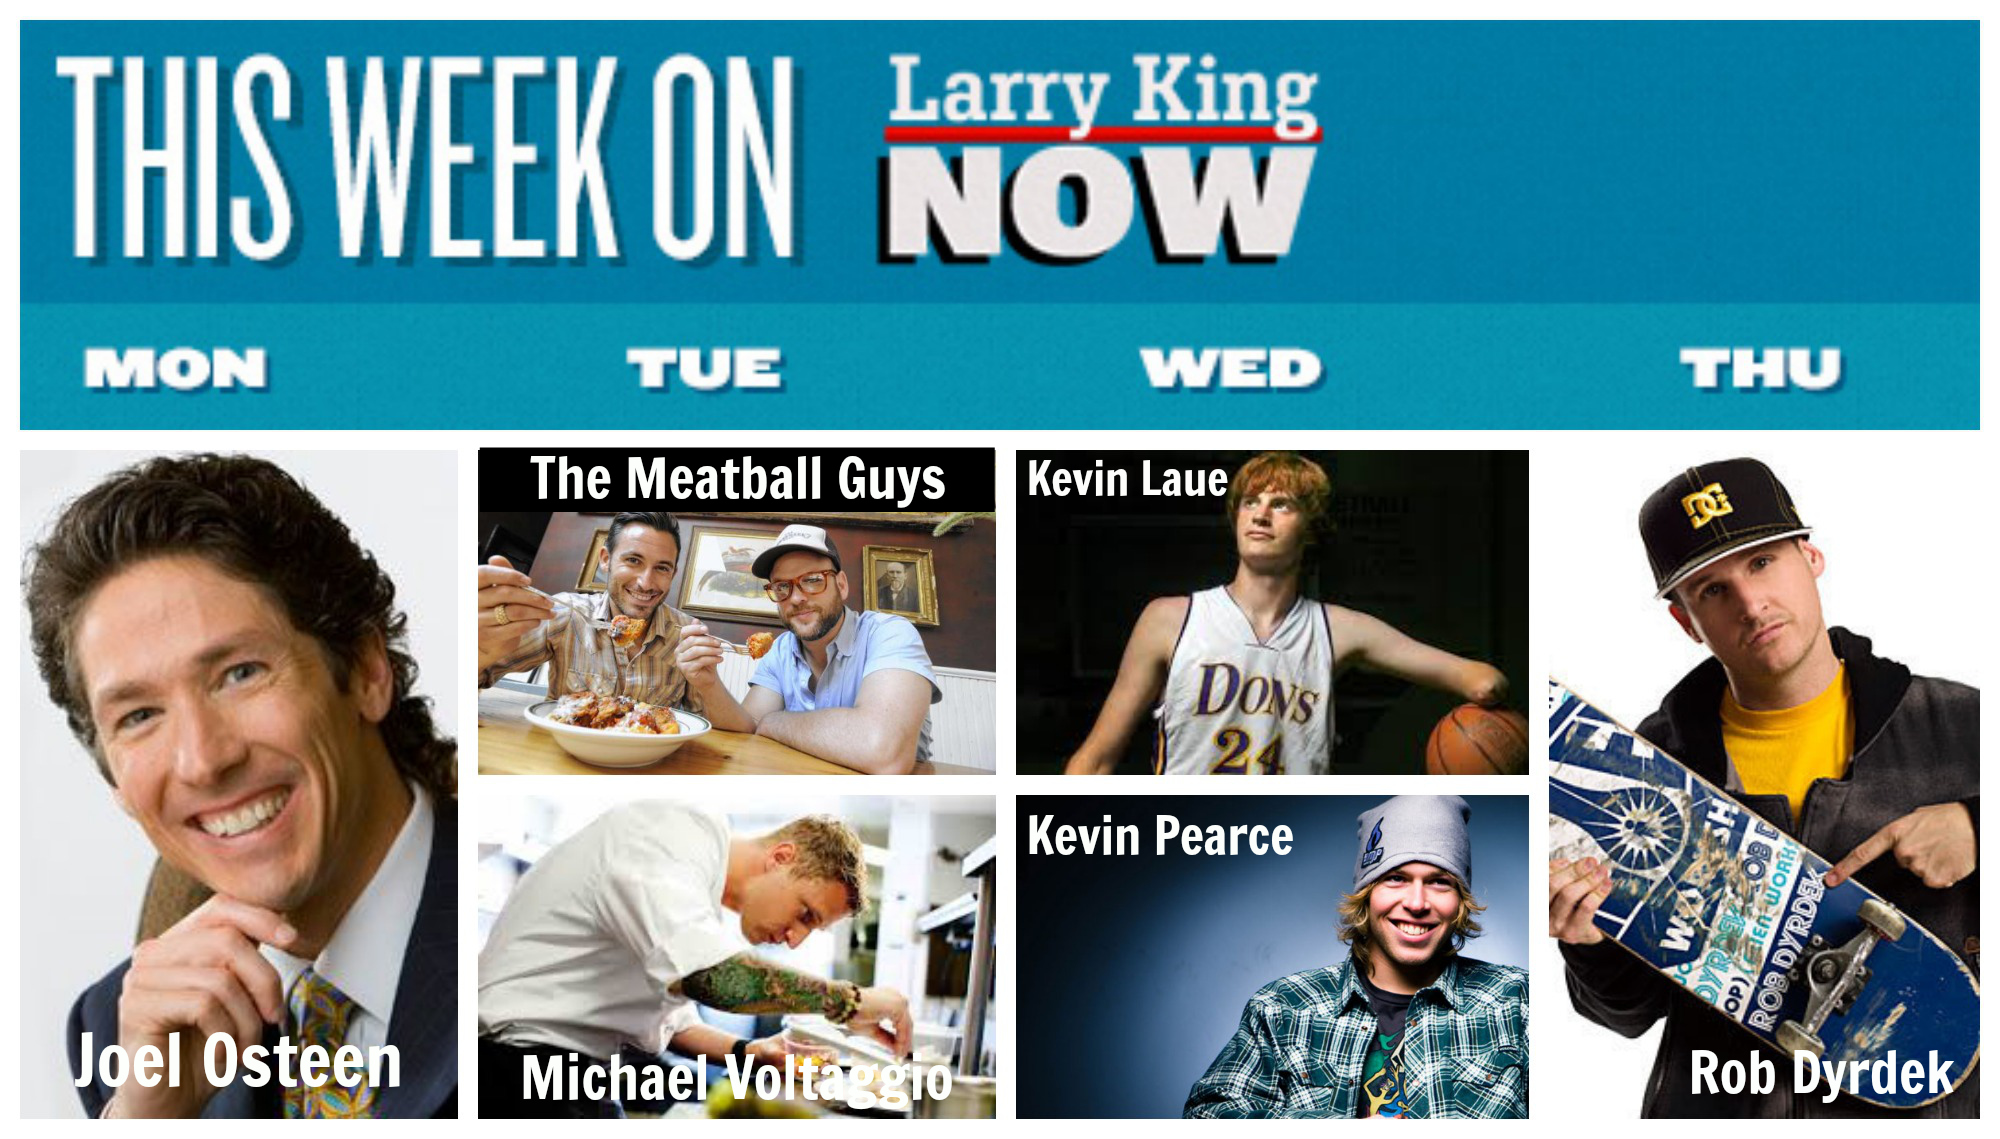 This Week on Larry King Now- Jan 13 2014